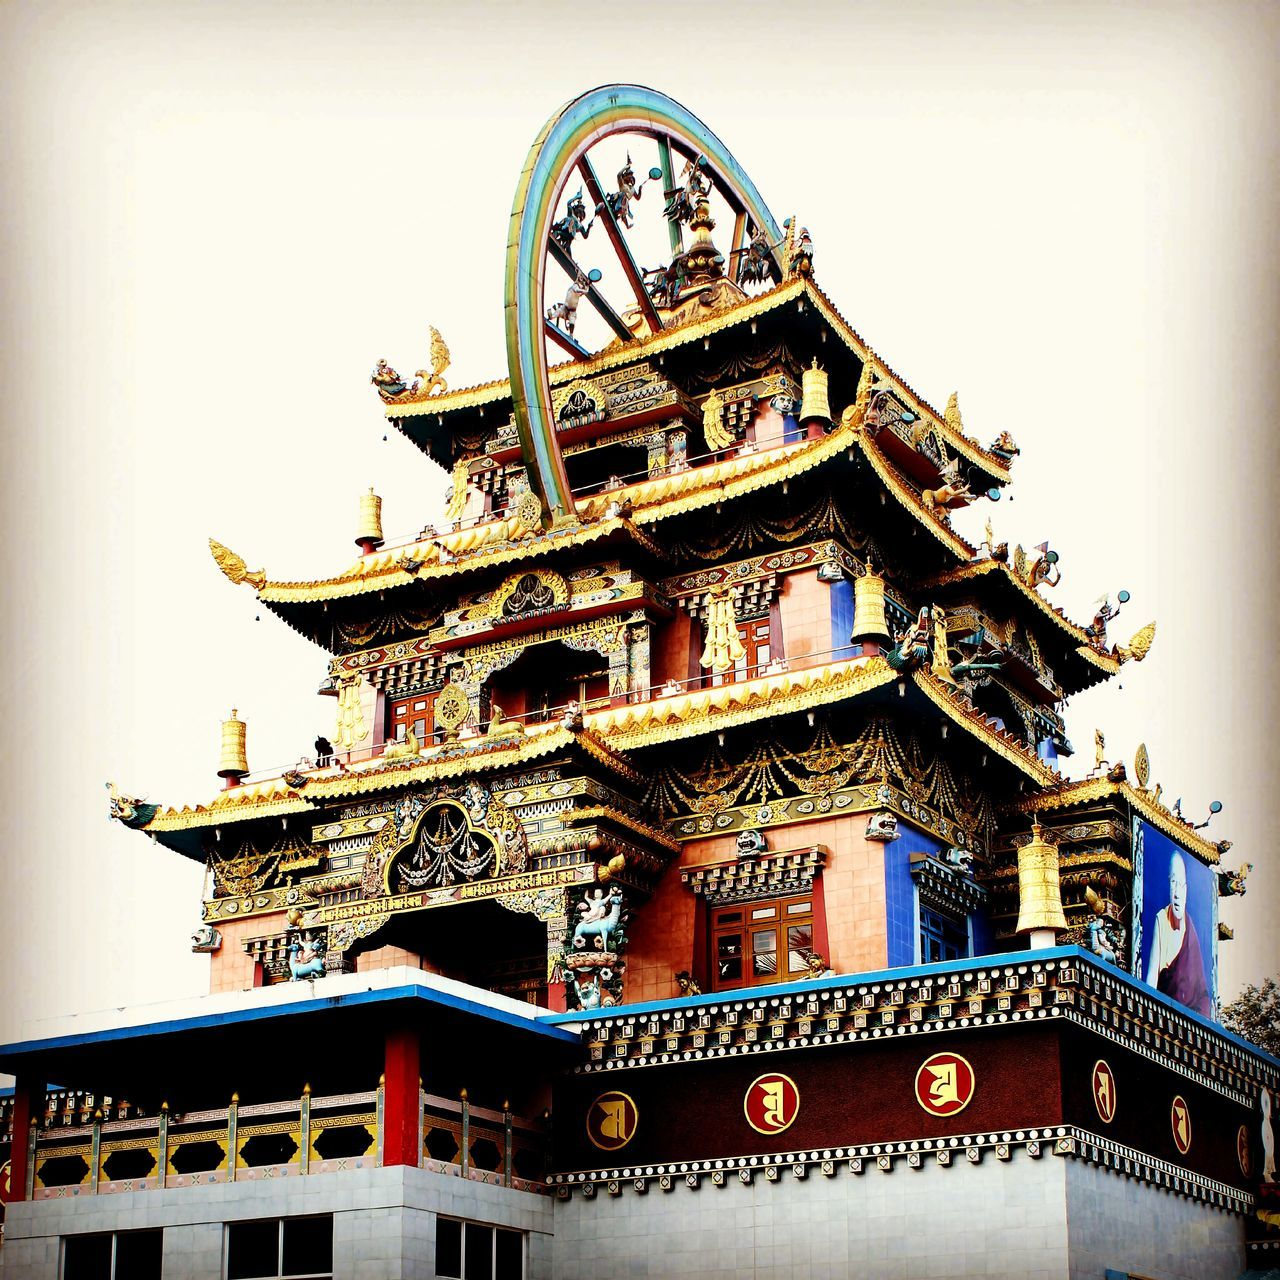 Goldentemple Coorg Travel Outdoors History Architecture Low Angle View Vibrant Color Photography Sacred Places